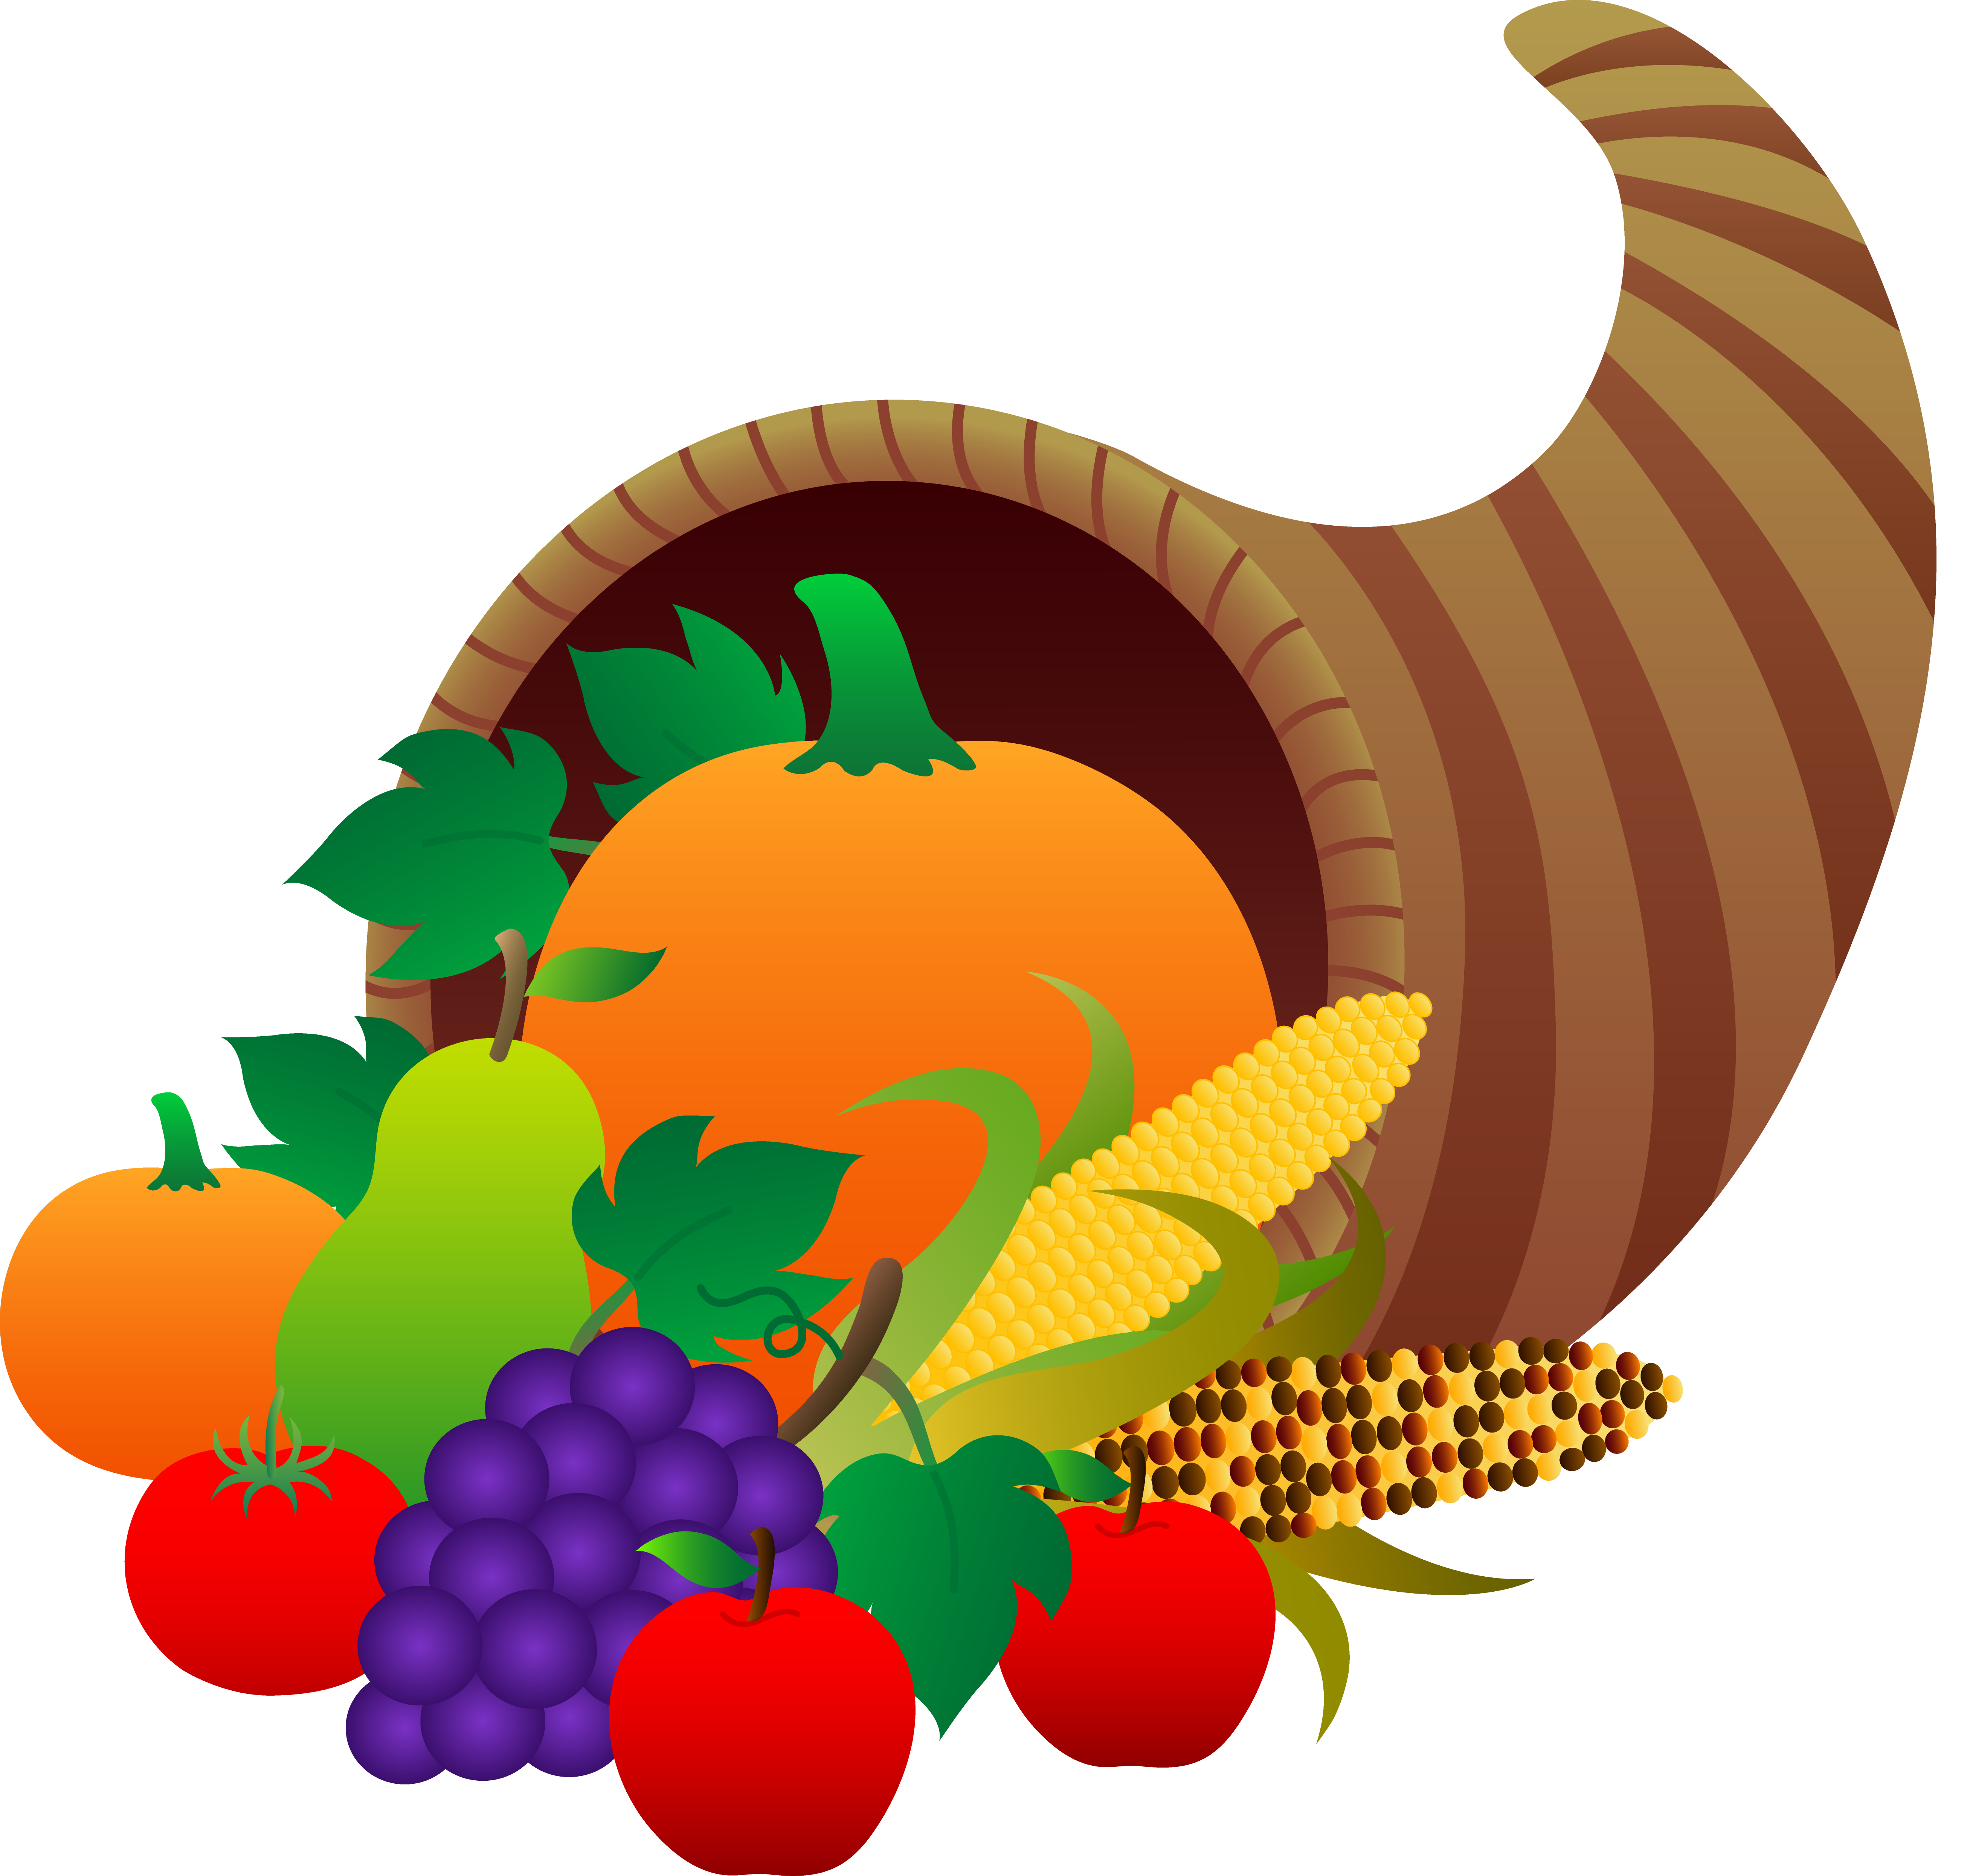 Free animated thanksgiving backgrounds clipart best - Thanksgiving moving wallpaper ...